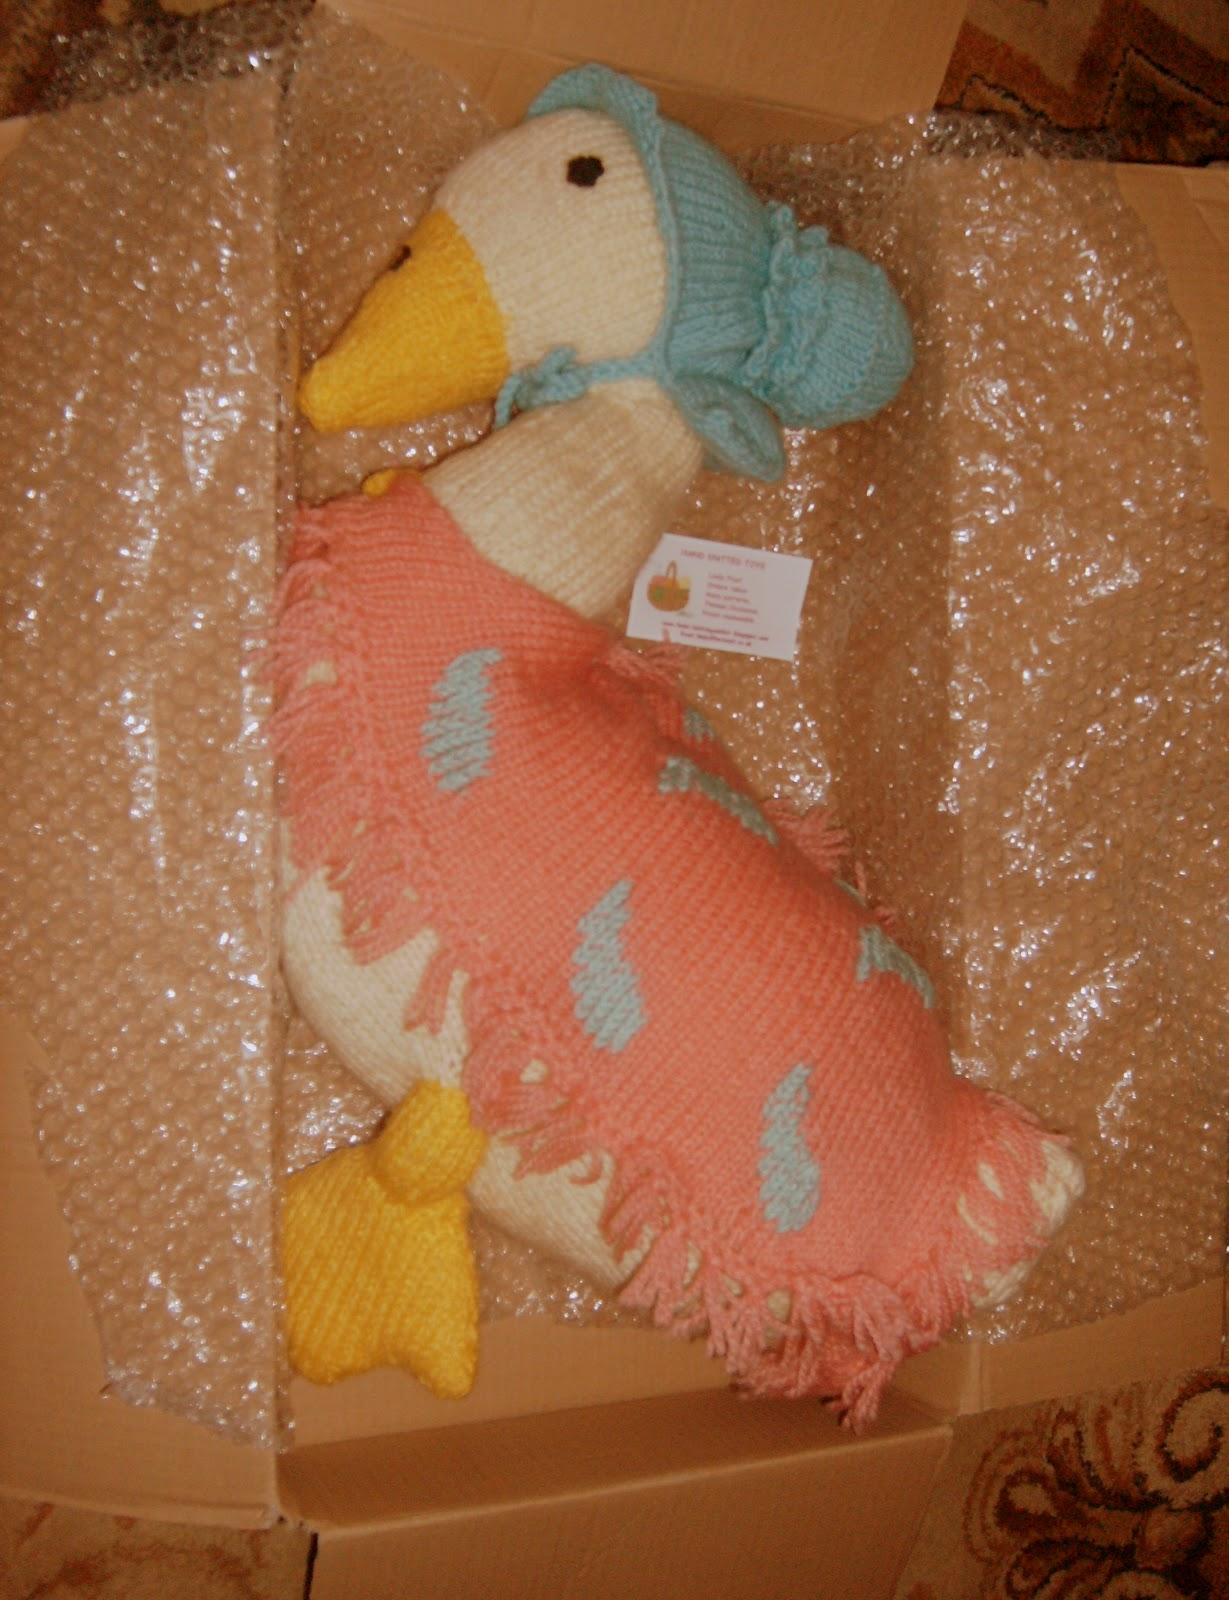 Knitting Pattern For Jemima Puddle Duck : Knitting Addict: Jemima Puddle duck